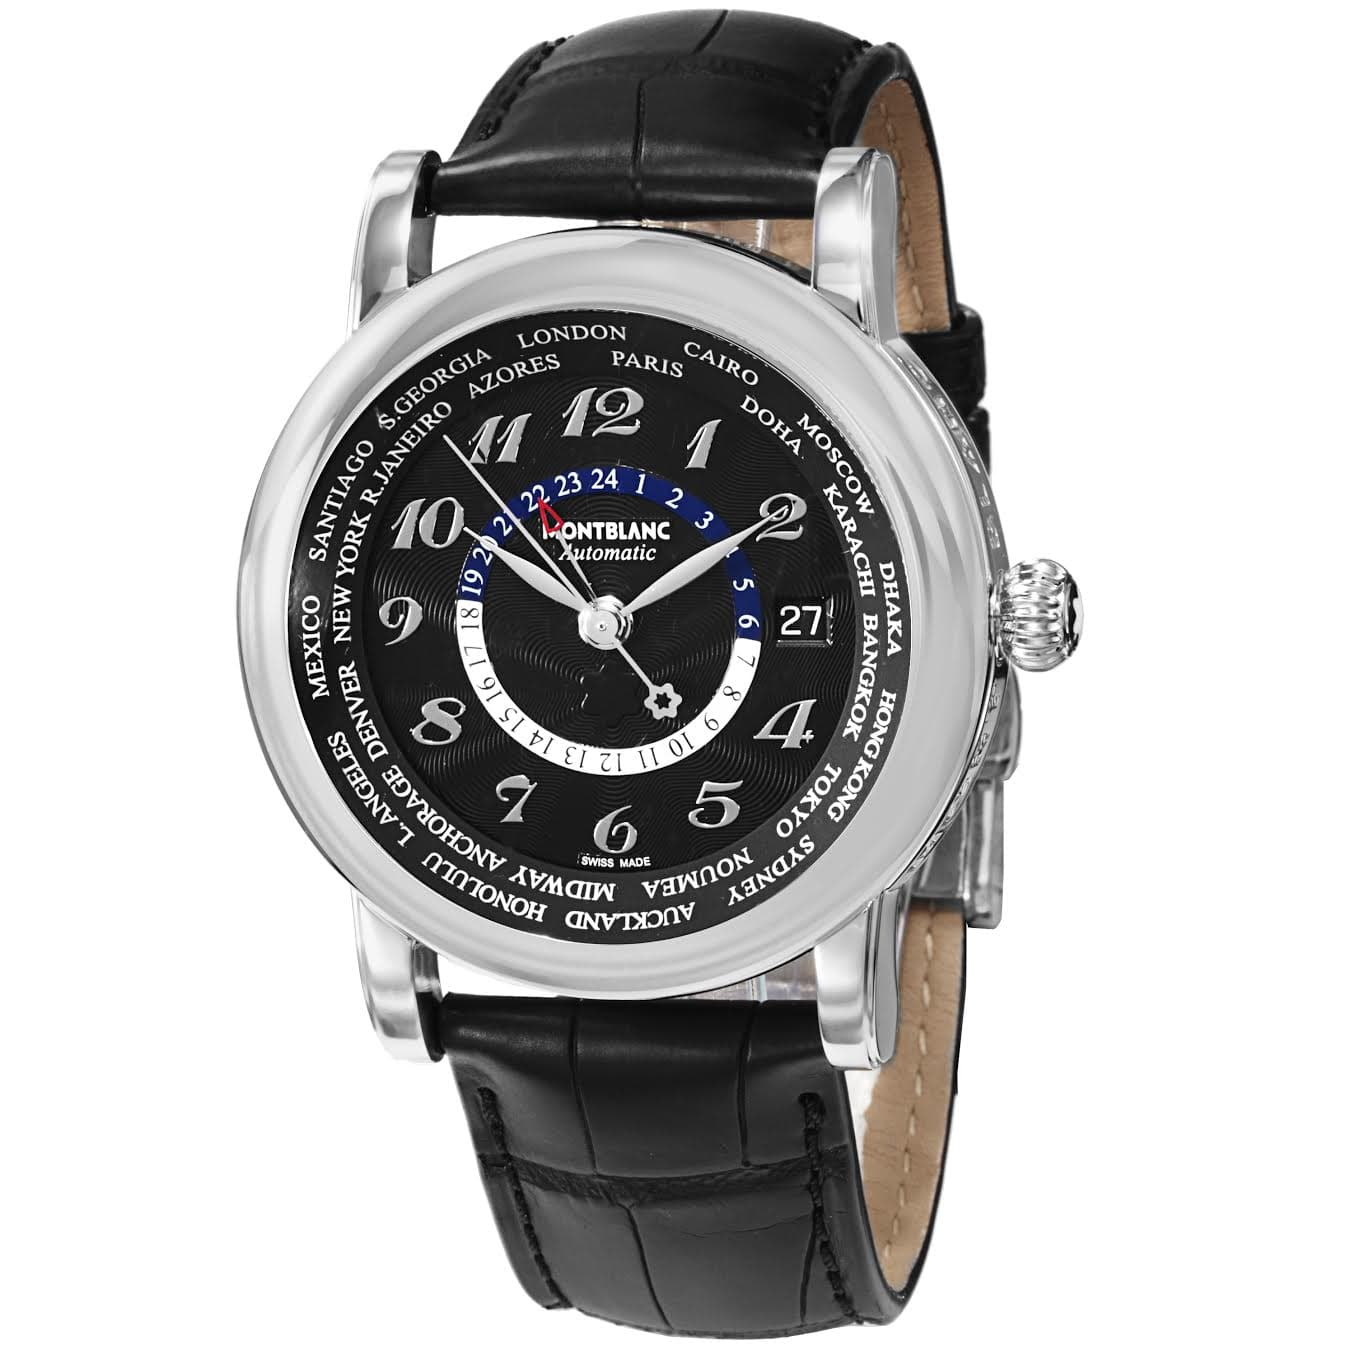 Montblanc Men's Star GMT Automatic Watch $1749 + free shipping